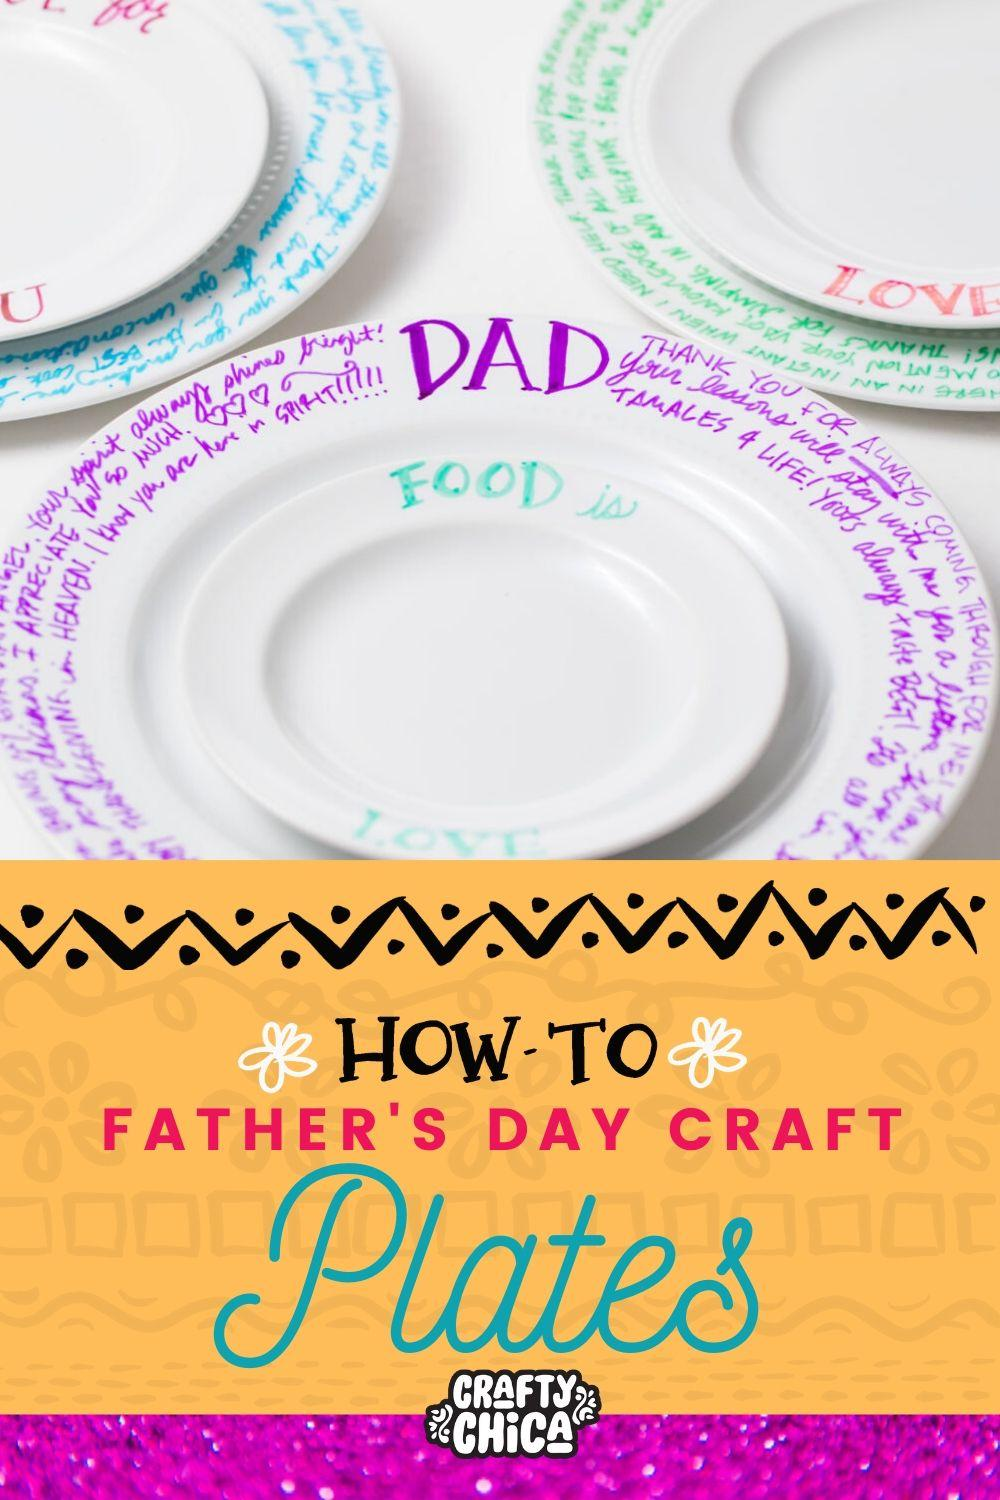 Make a plate for Father's Day #fathersday #craftychica